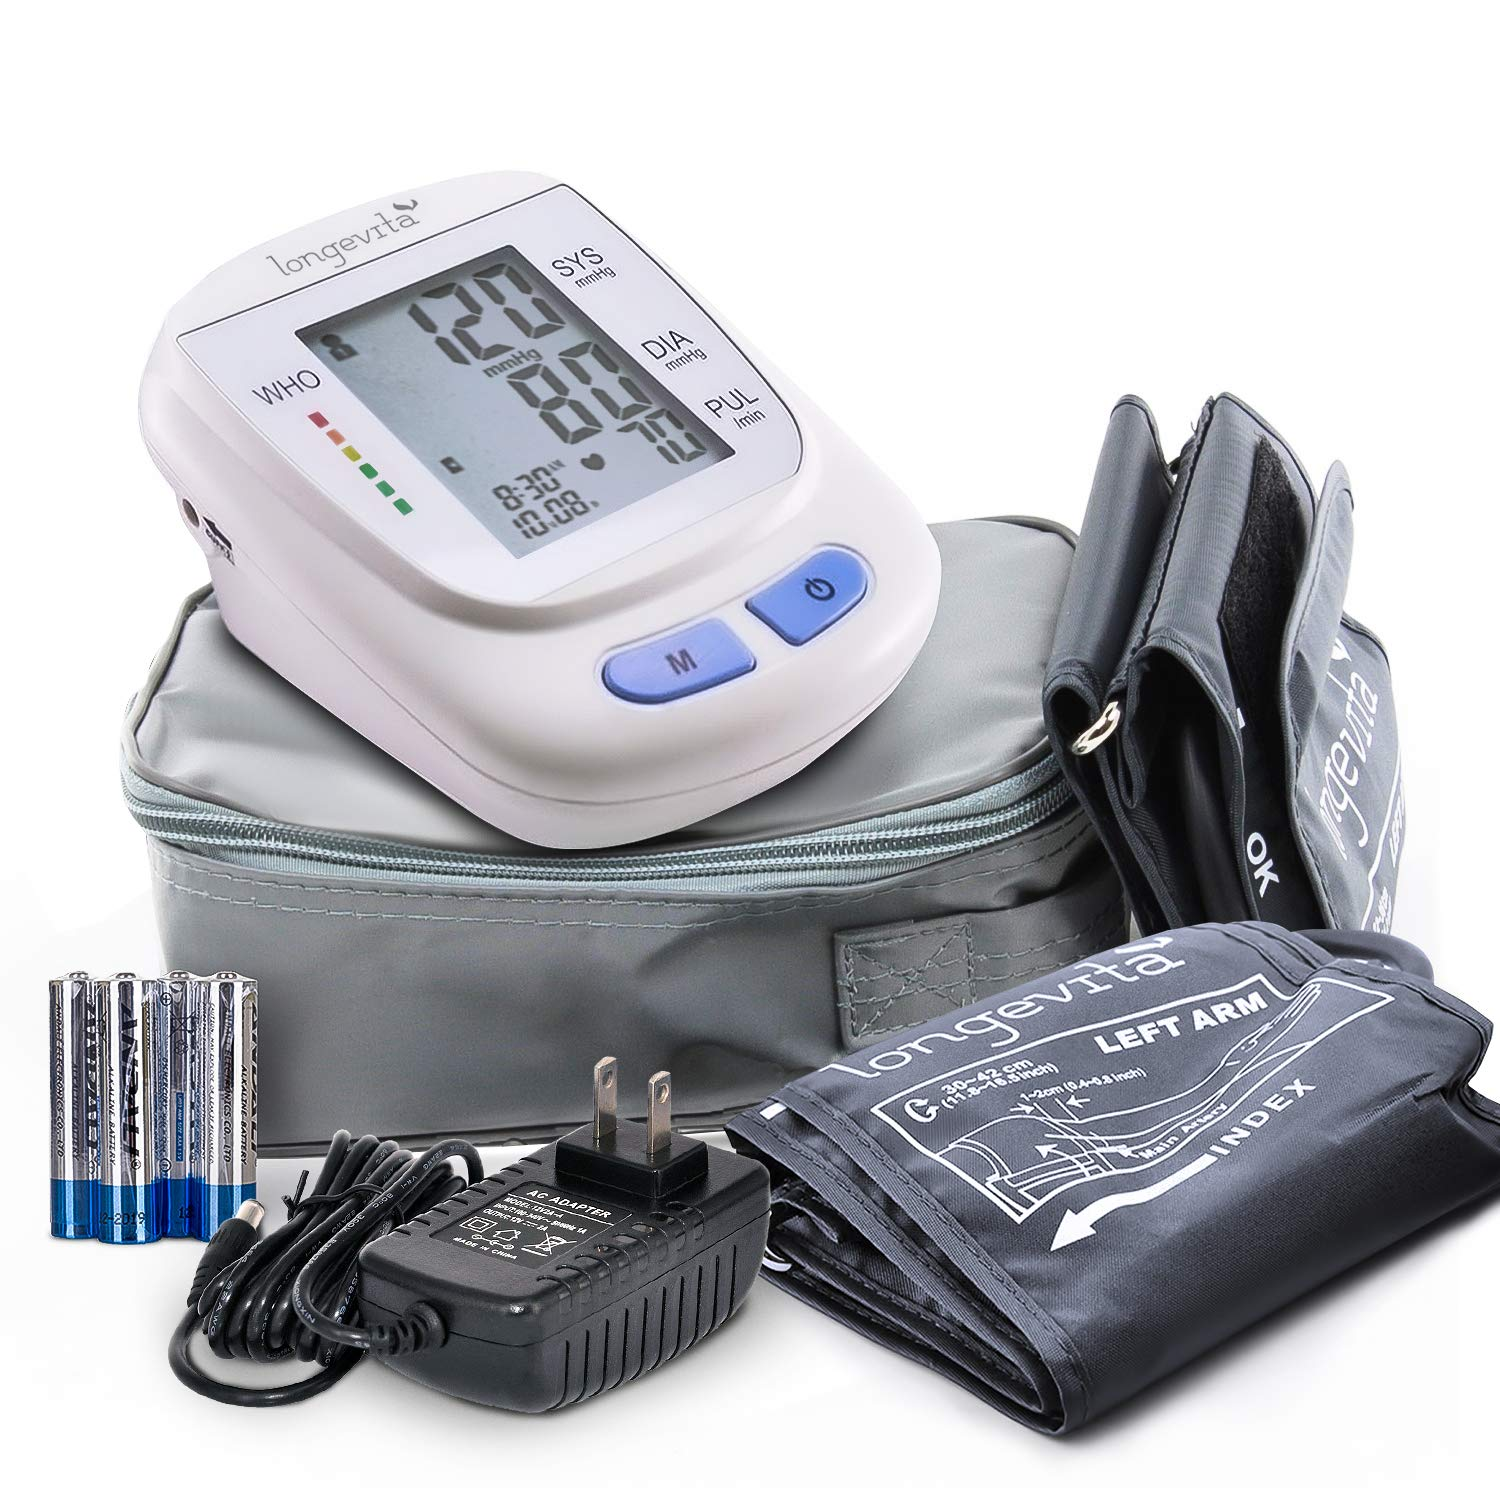 Automatic Portable Digital Upper Arm Blood Pressure Monitor with Pressure Cuff – Longevita BP-103